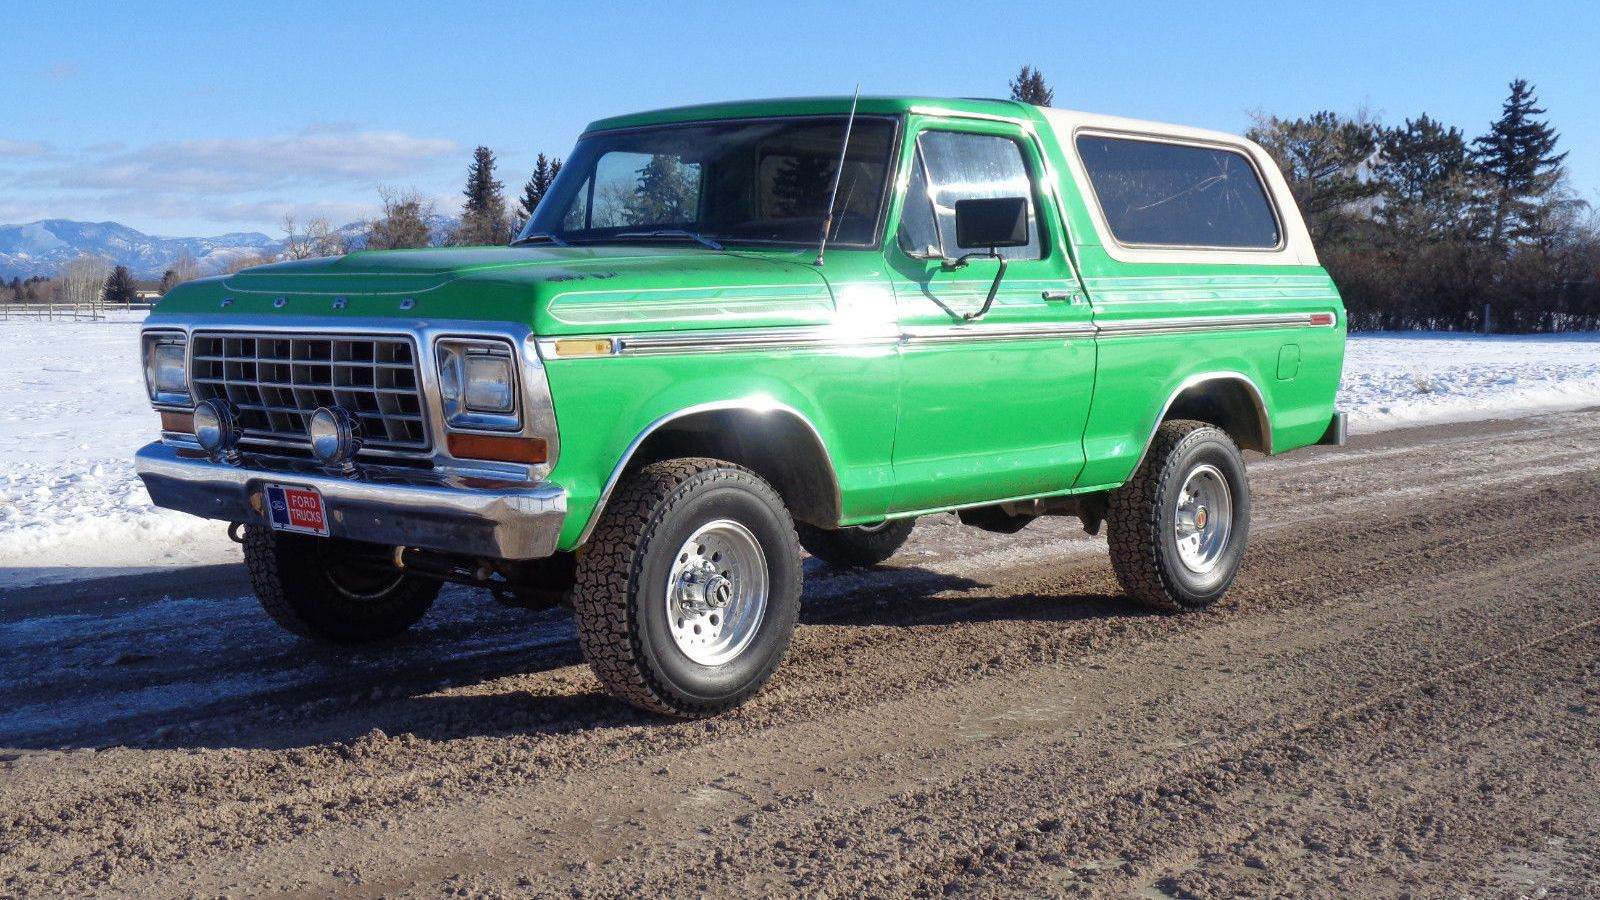 Burly Bronco This Very Green 1979 Ford Needs A New Home